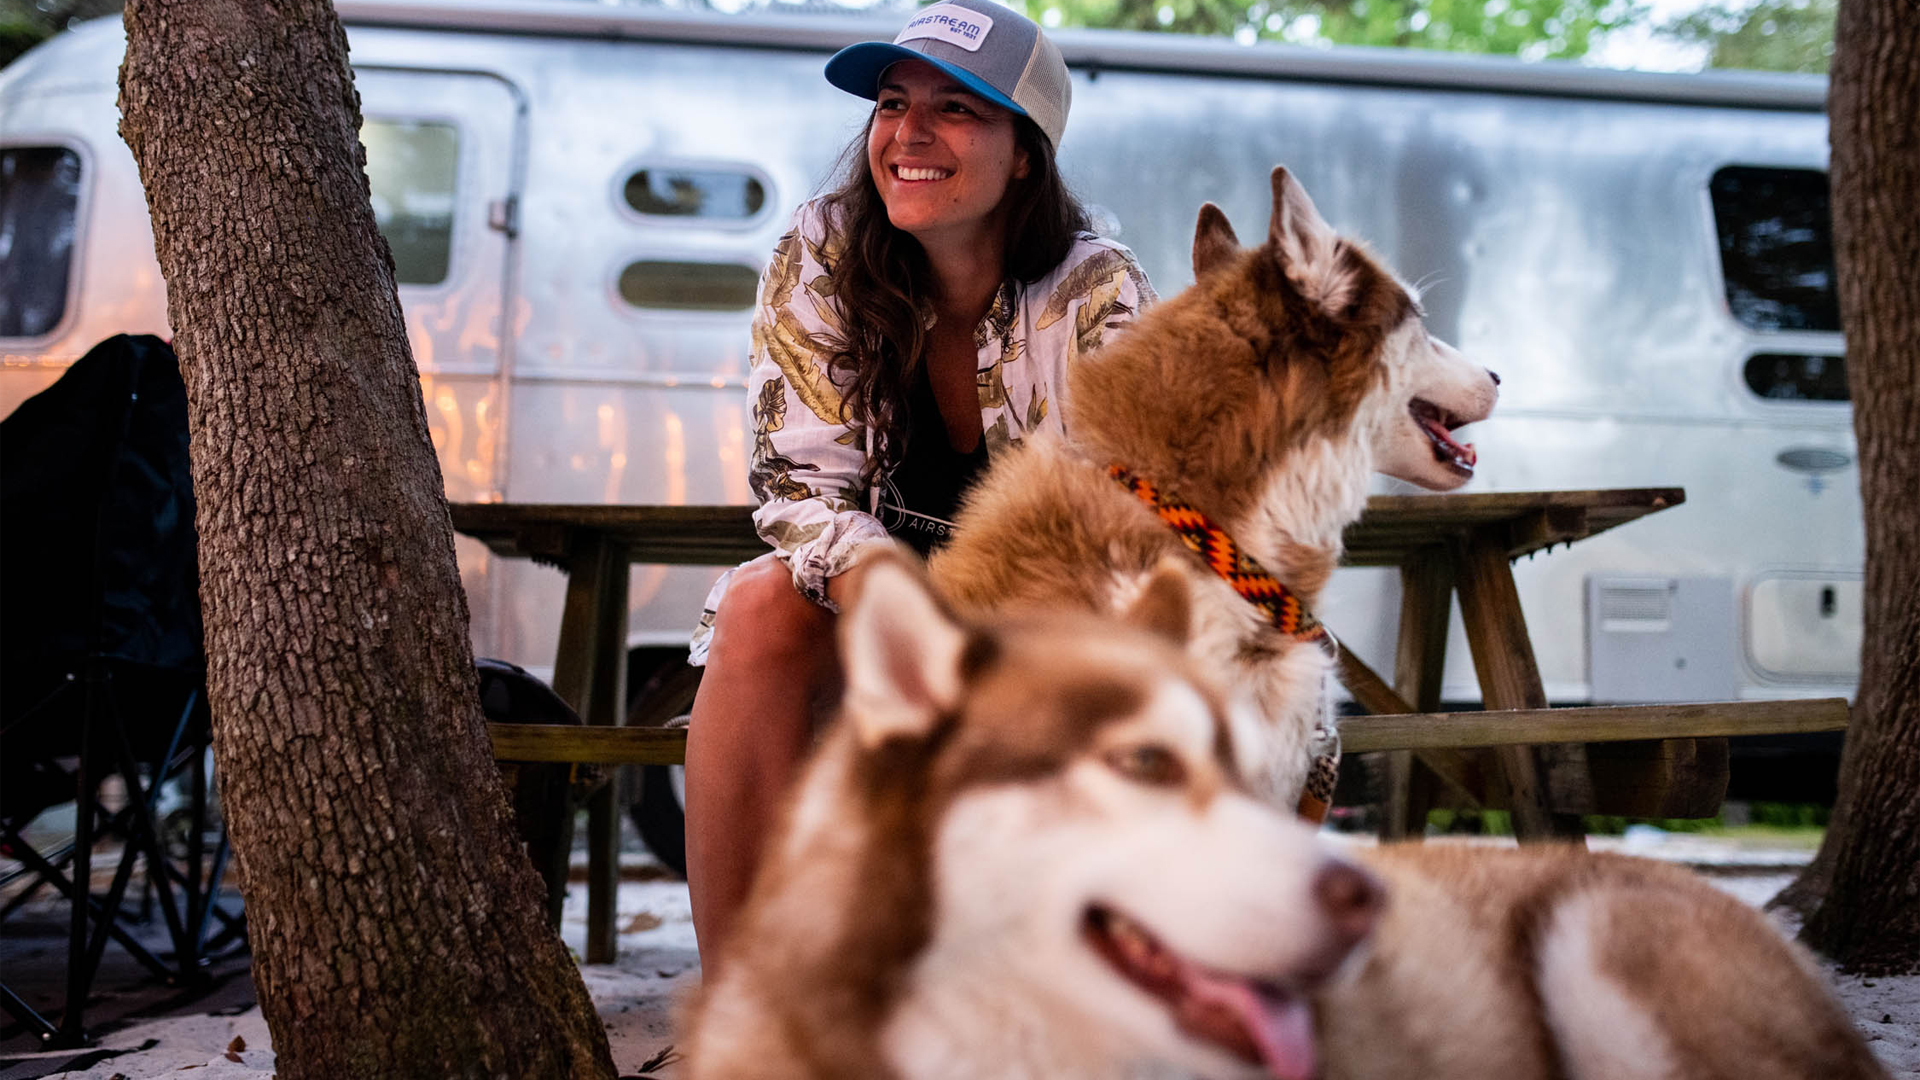 A woman and her two dogs sitting at a campground outside of her Airstream Travel Trailer